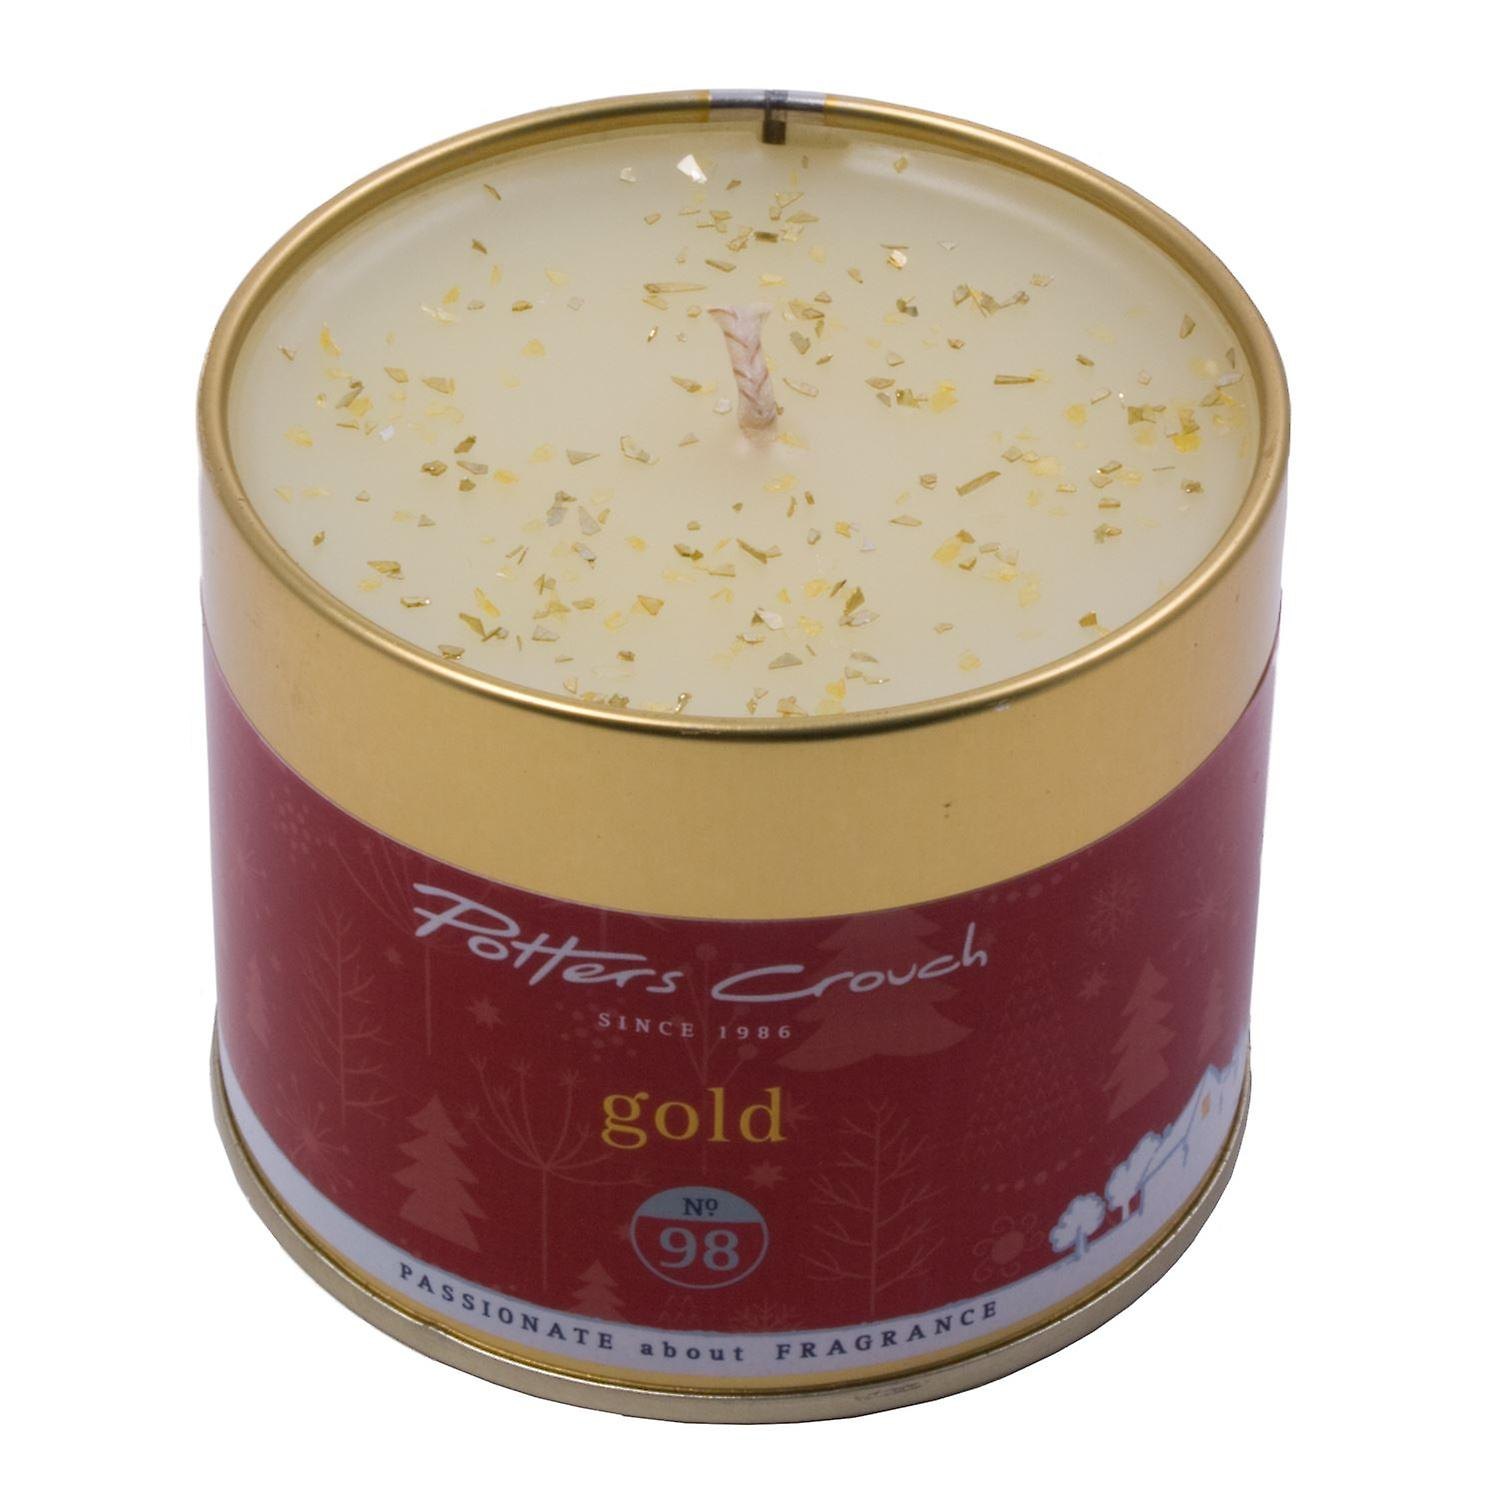 Potters Crouch Gold Scented Candle in Tin